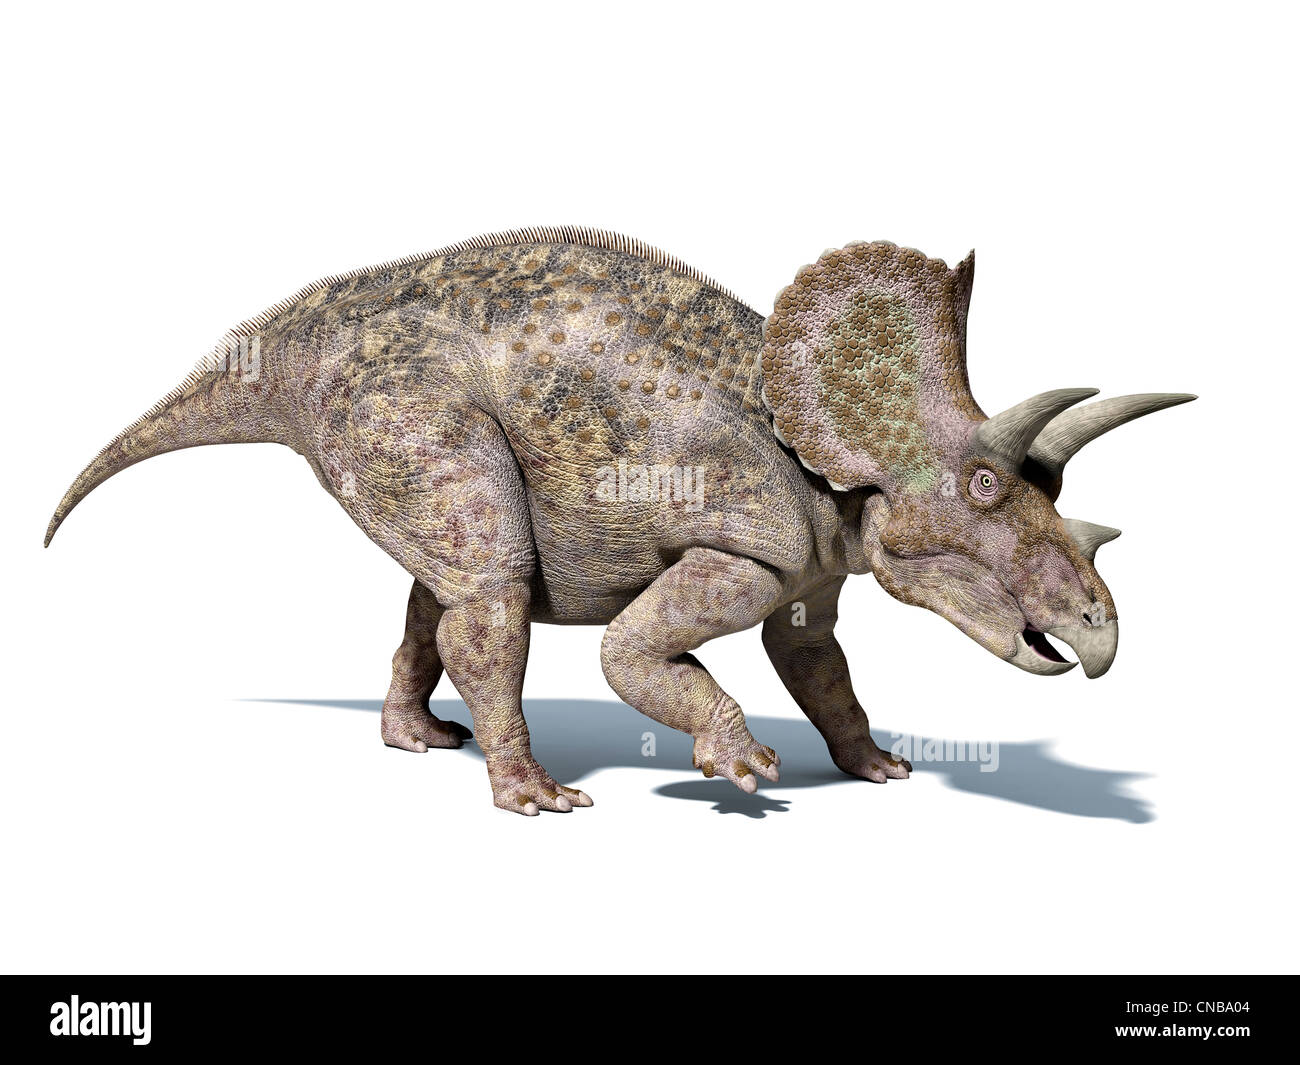 Triceratops dinosaur, very well detailed and scientifically correct. isolated on white background, with clipping - Stock Image